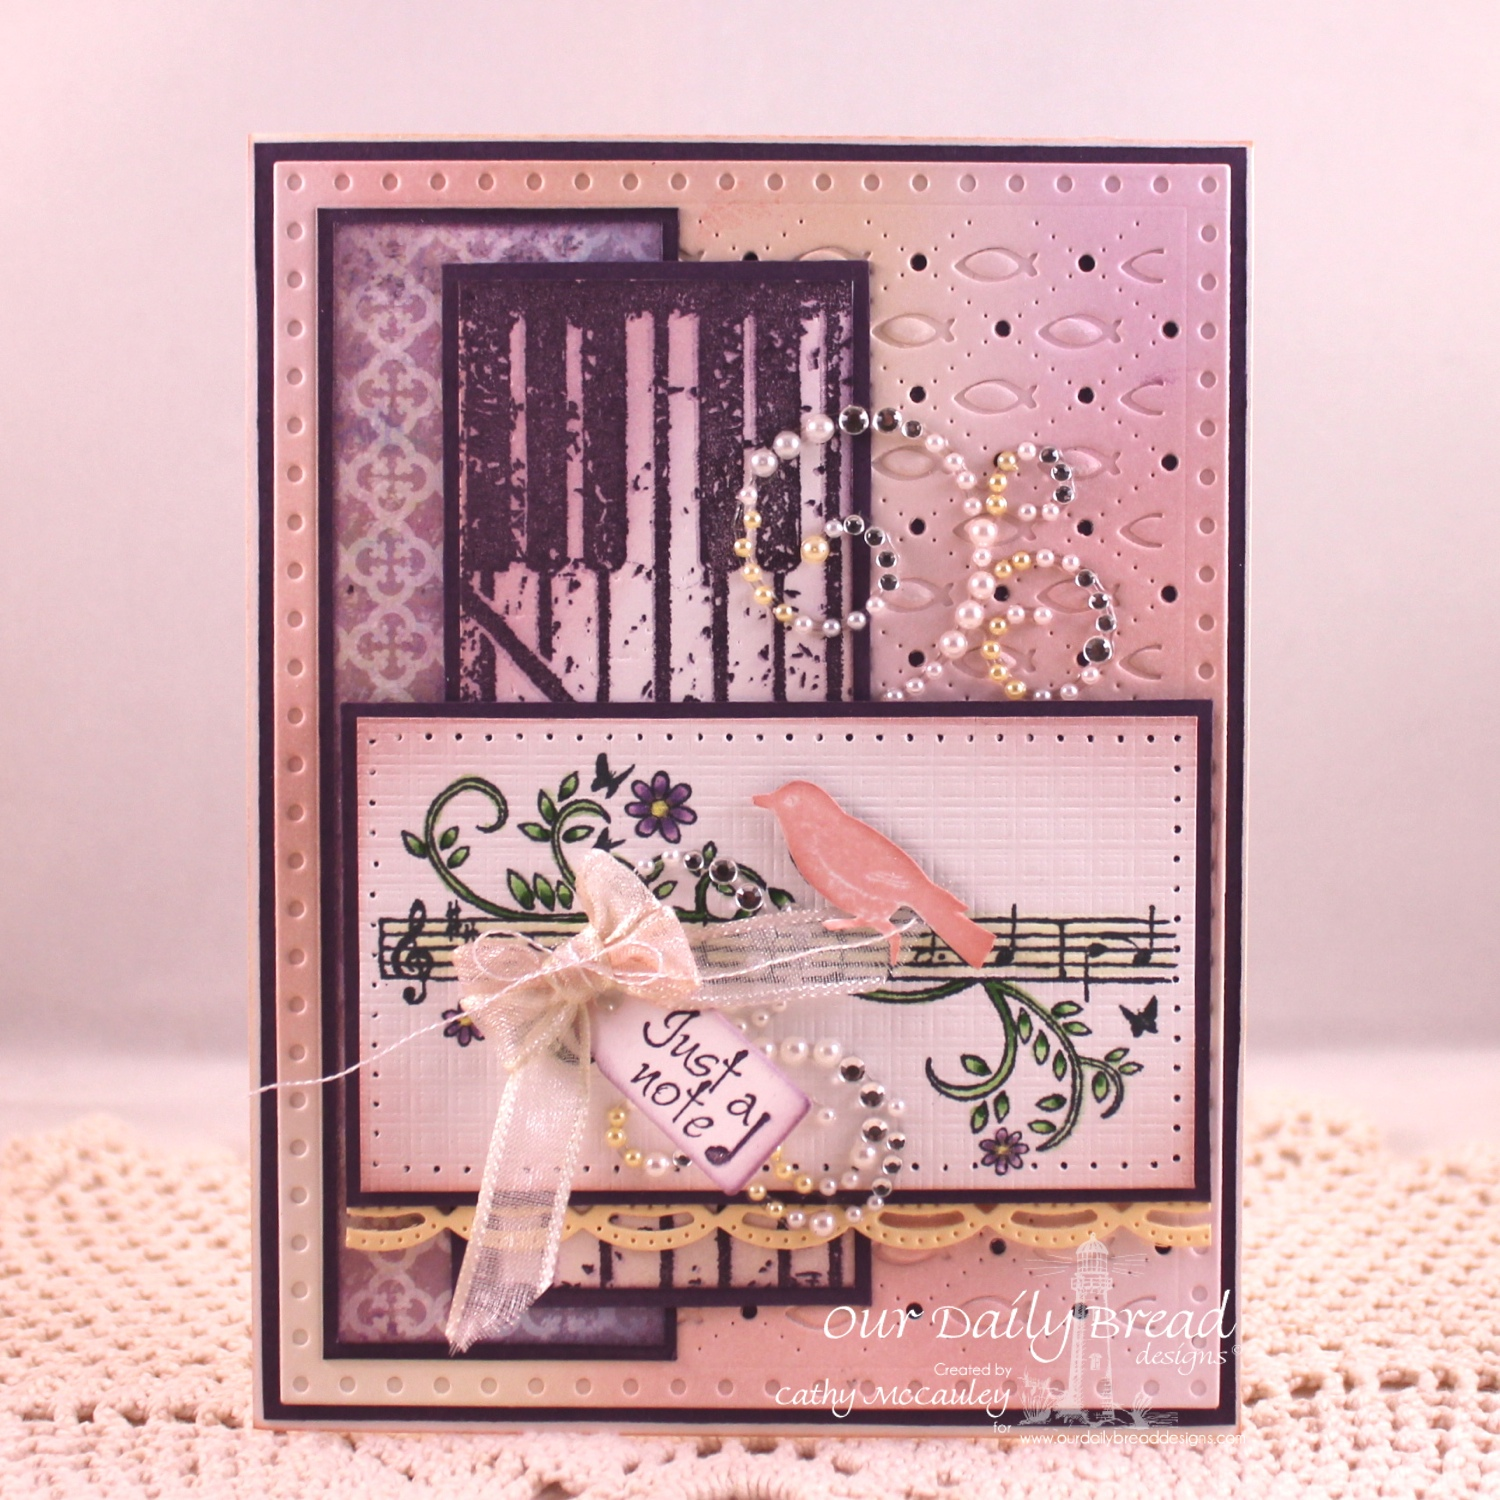 Stamps - Our Daily Bread Designs Music Speaks, Just a Note, Grunge Piano Background, ODBD Custom Faithful Fish Pattern Die and Debossing Plate, ODBD Custom Mini Tags Dies, ODBD Custom Beautiful Borders Dies, ODBD Christian Faith Paper Collection